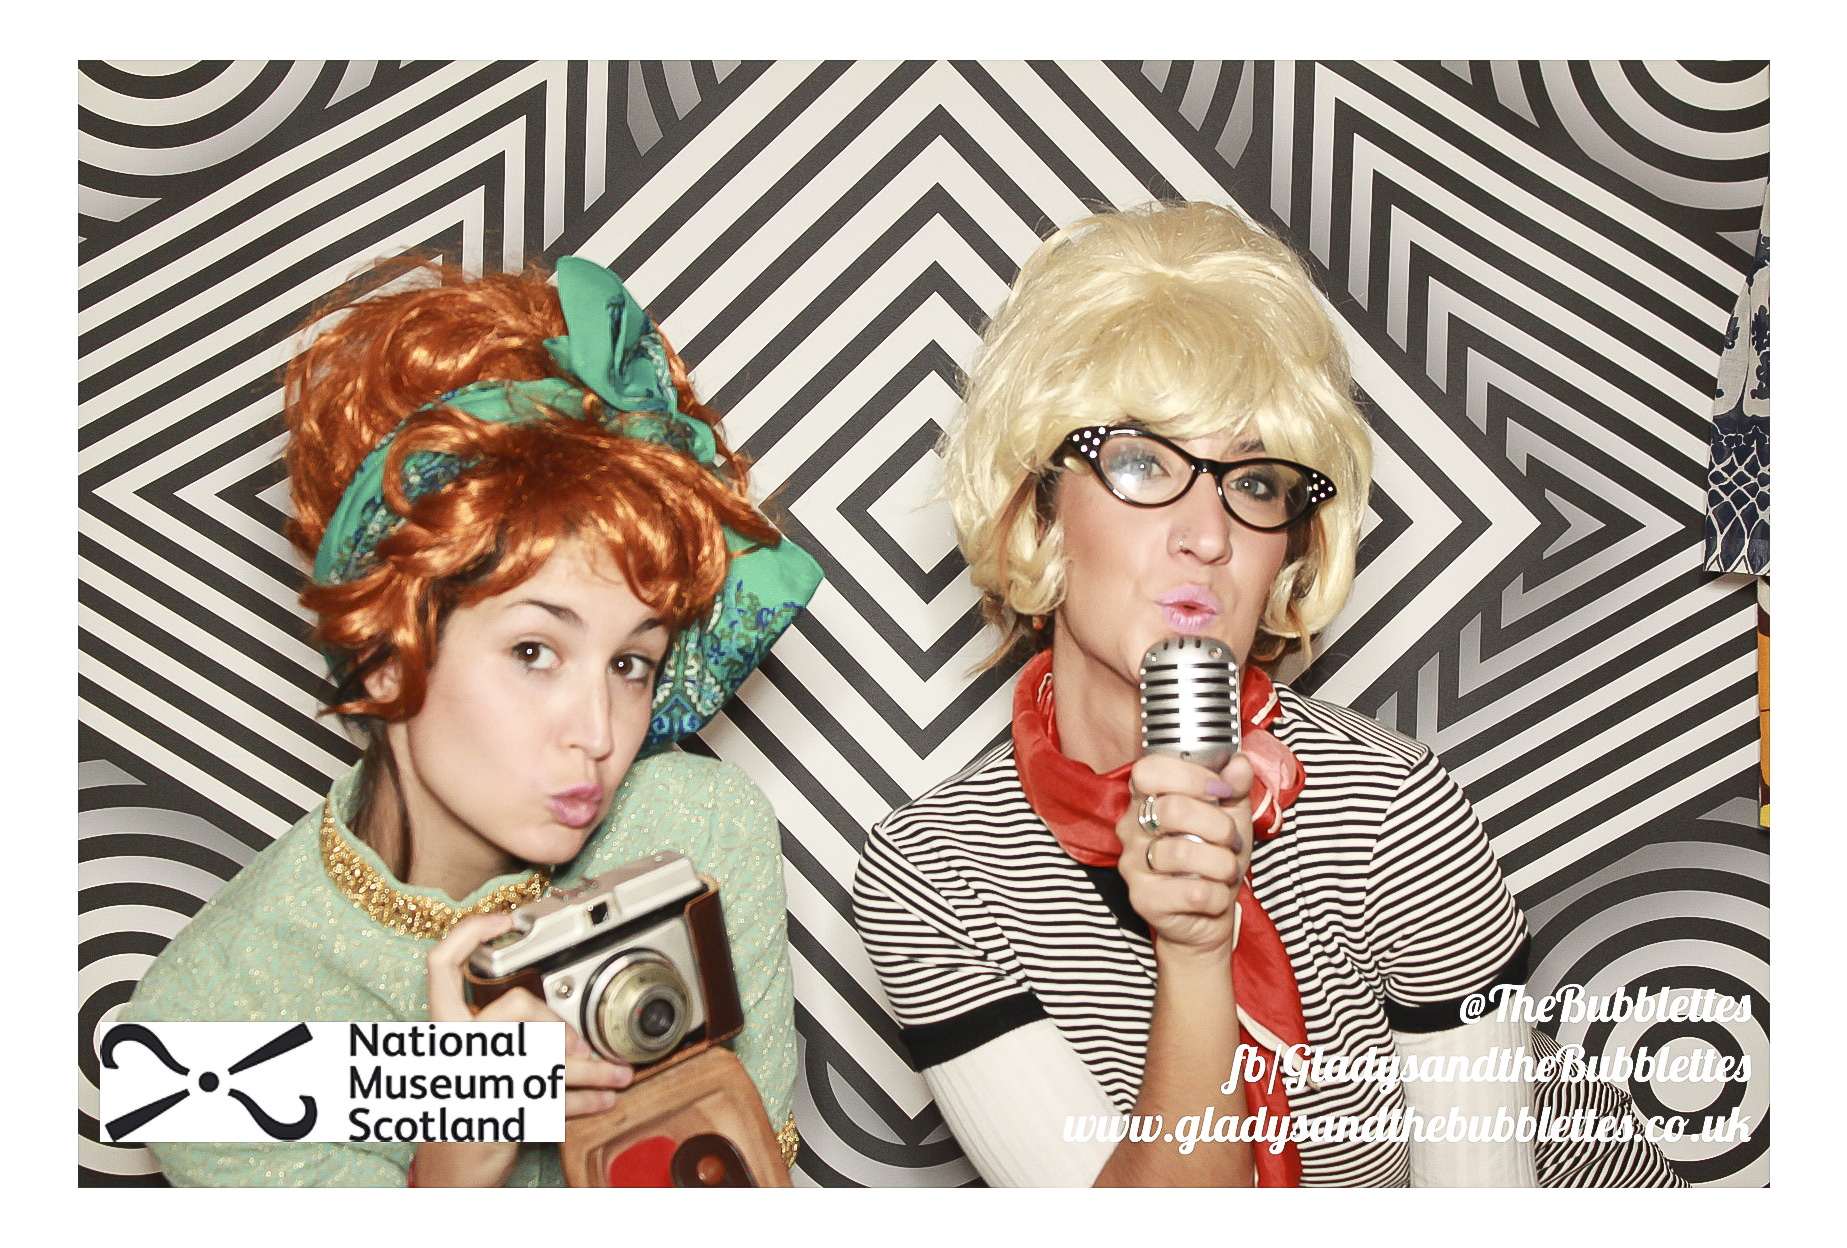 Styling the Nation at The National Museum Gladys & The Bubblettes Photo Booth Nov 2016_14.jpg